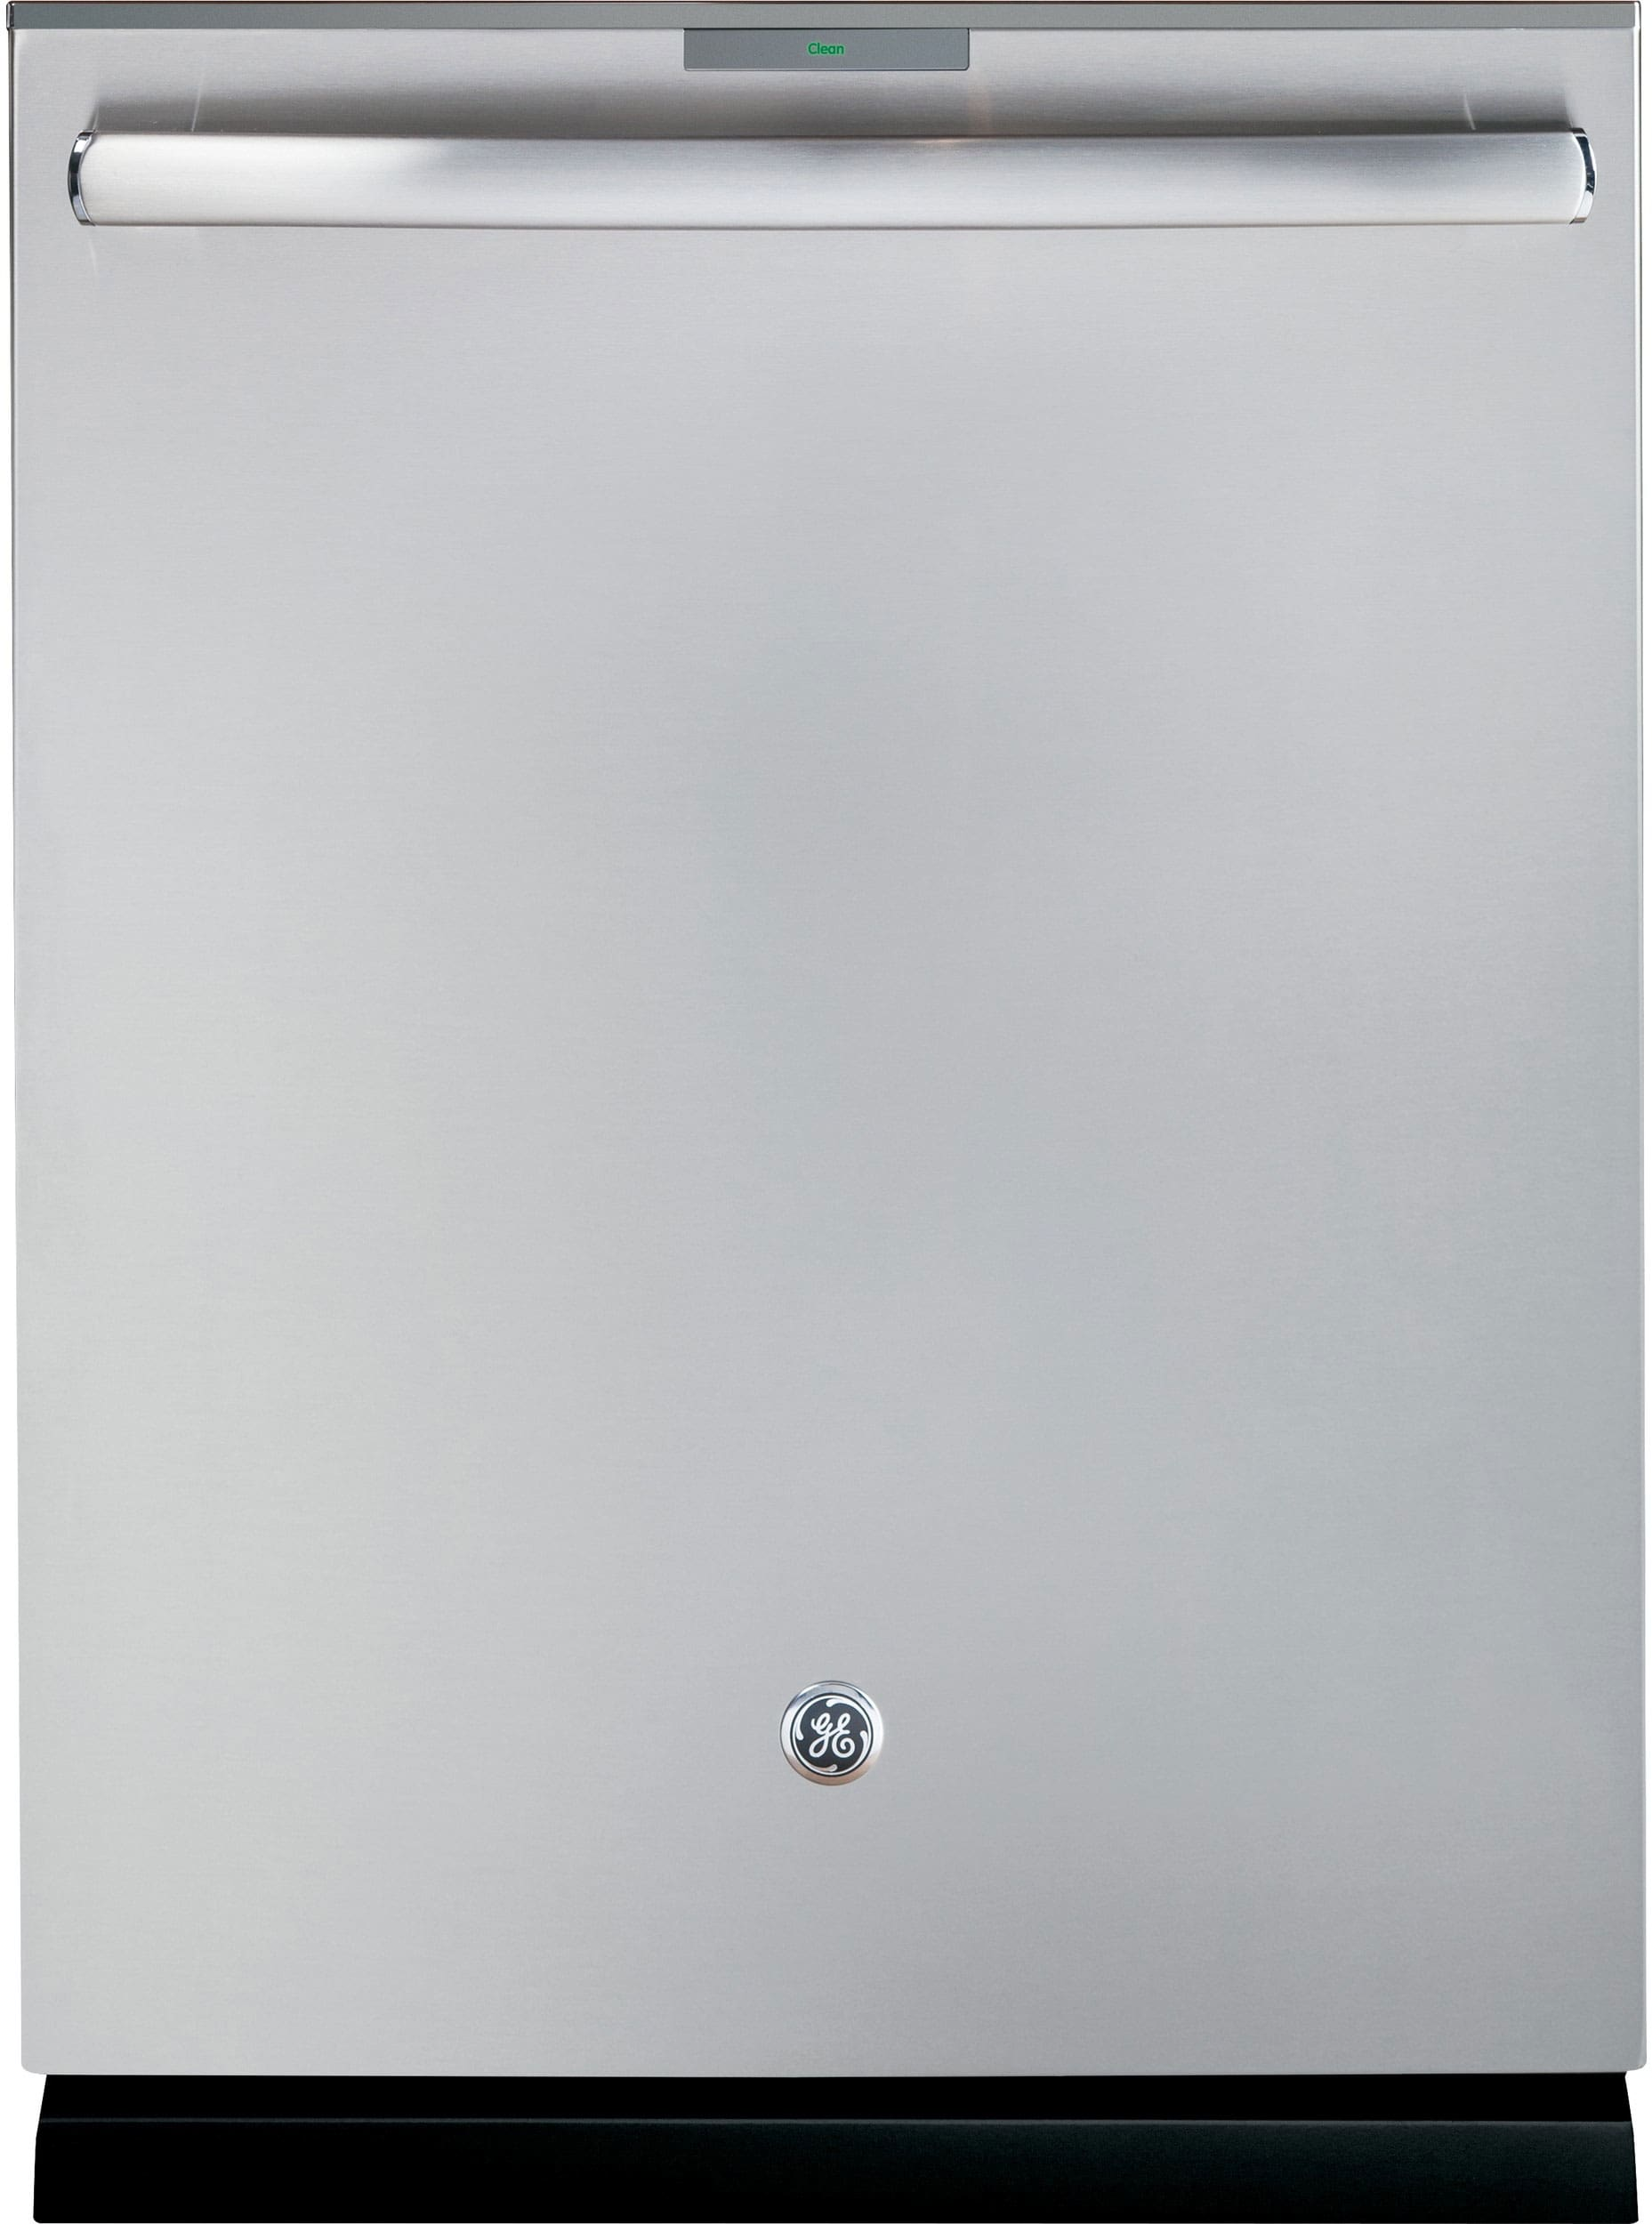 The GE Profile PDT855SSJSS is the conventional stainless steel version of this dishwasher.